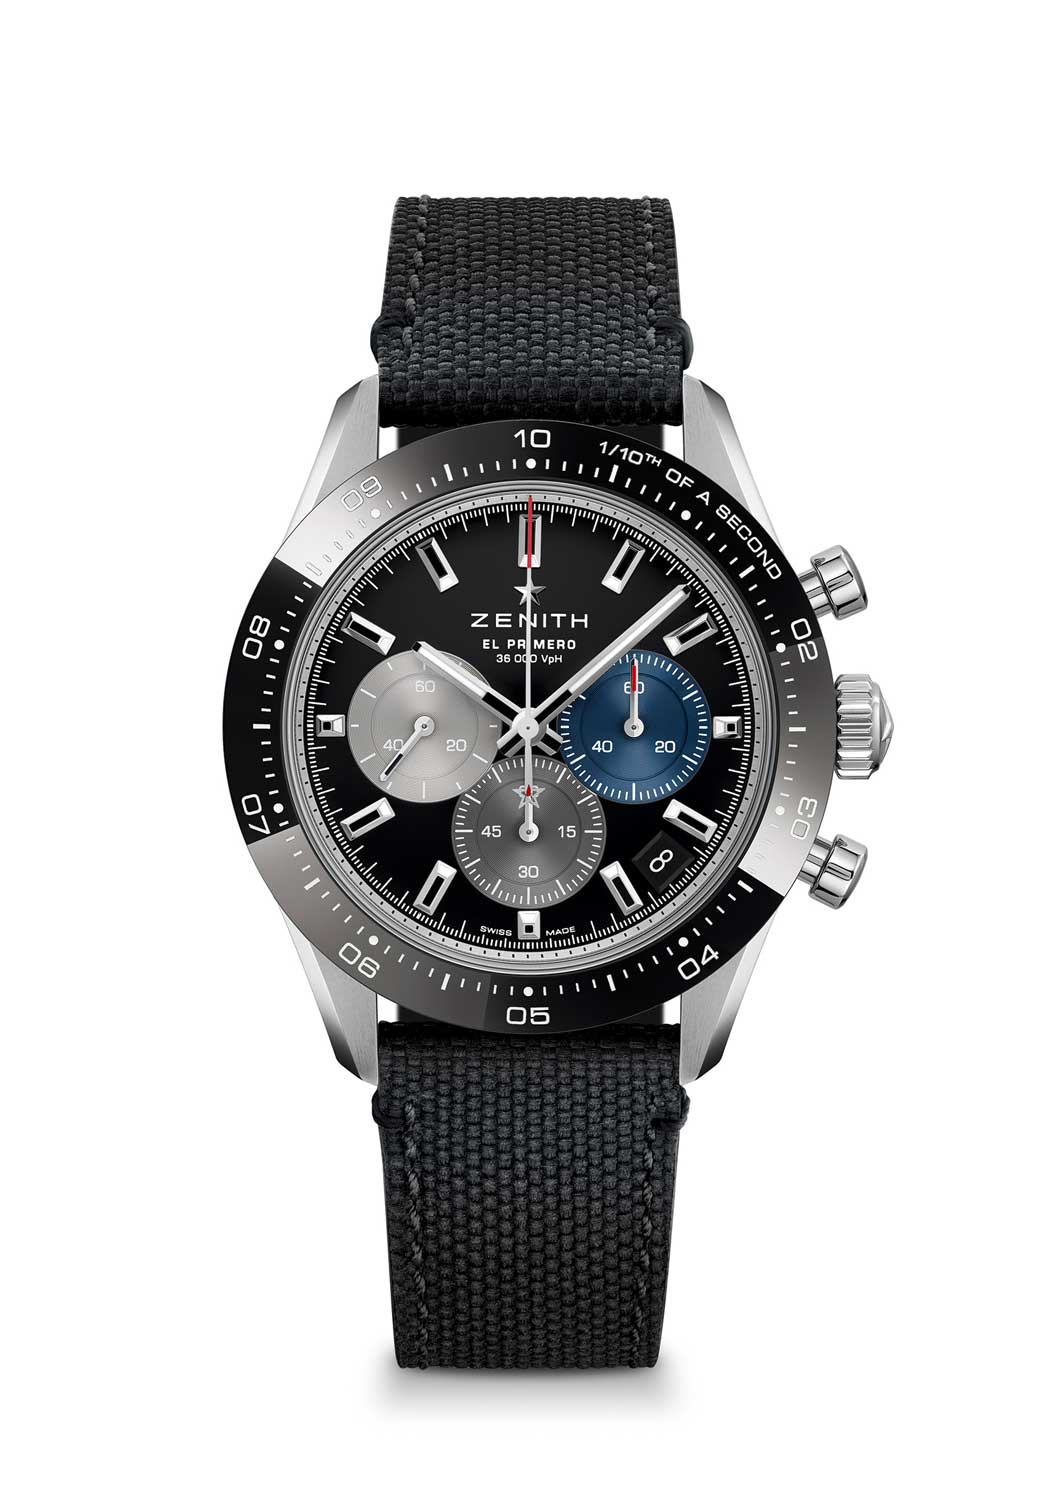 Zenith Chronomaster Sport ref. 03.3100.3600/21.M3100 with a black dial, fitted on a Cordura effect bracelet